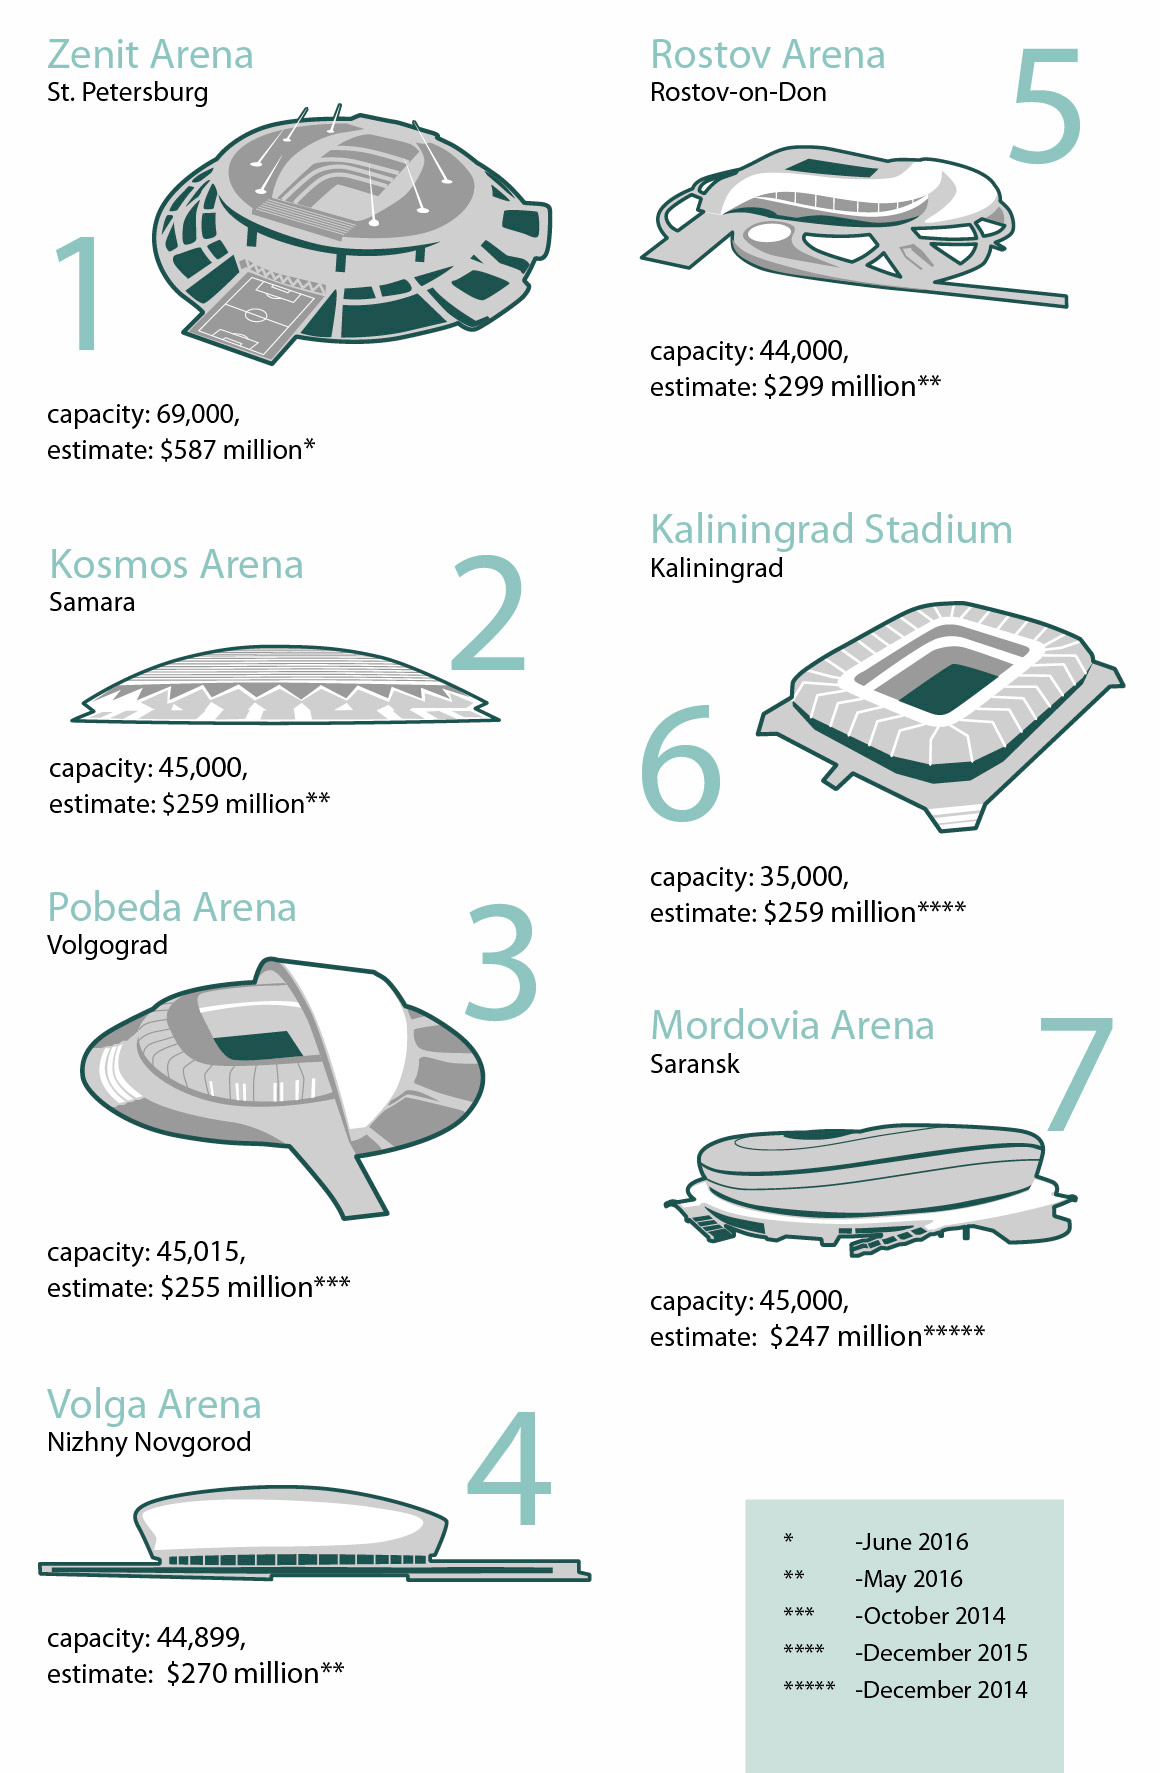 FIFA2018-Russia-worldcup-stadiums-facts